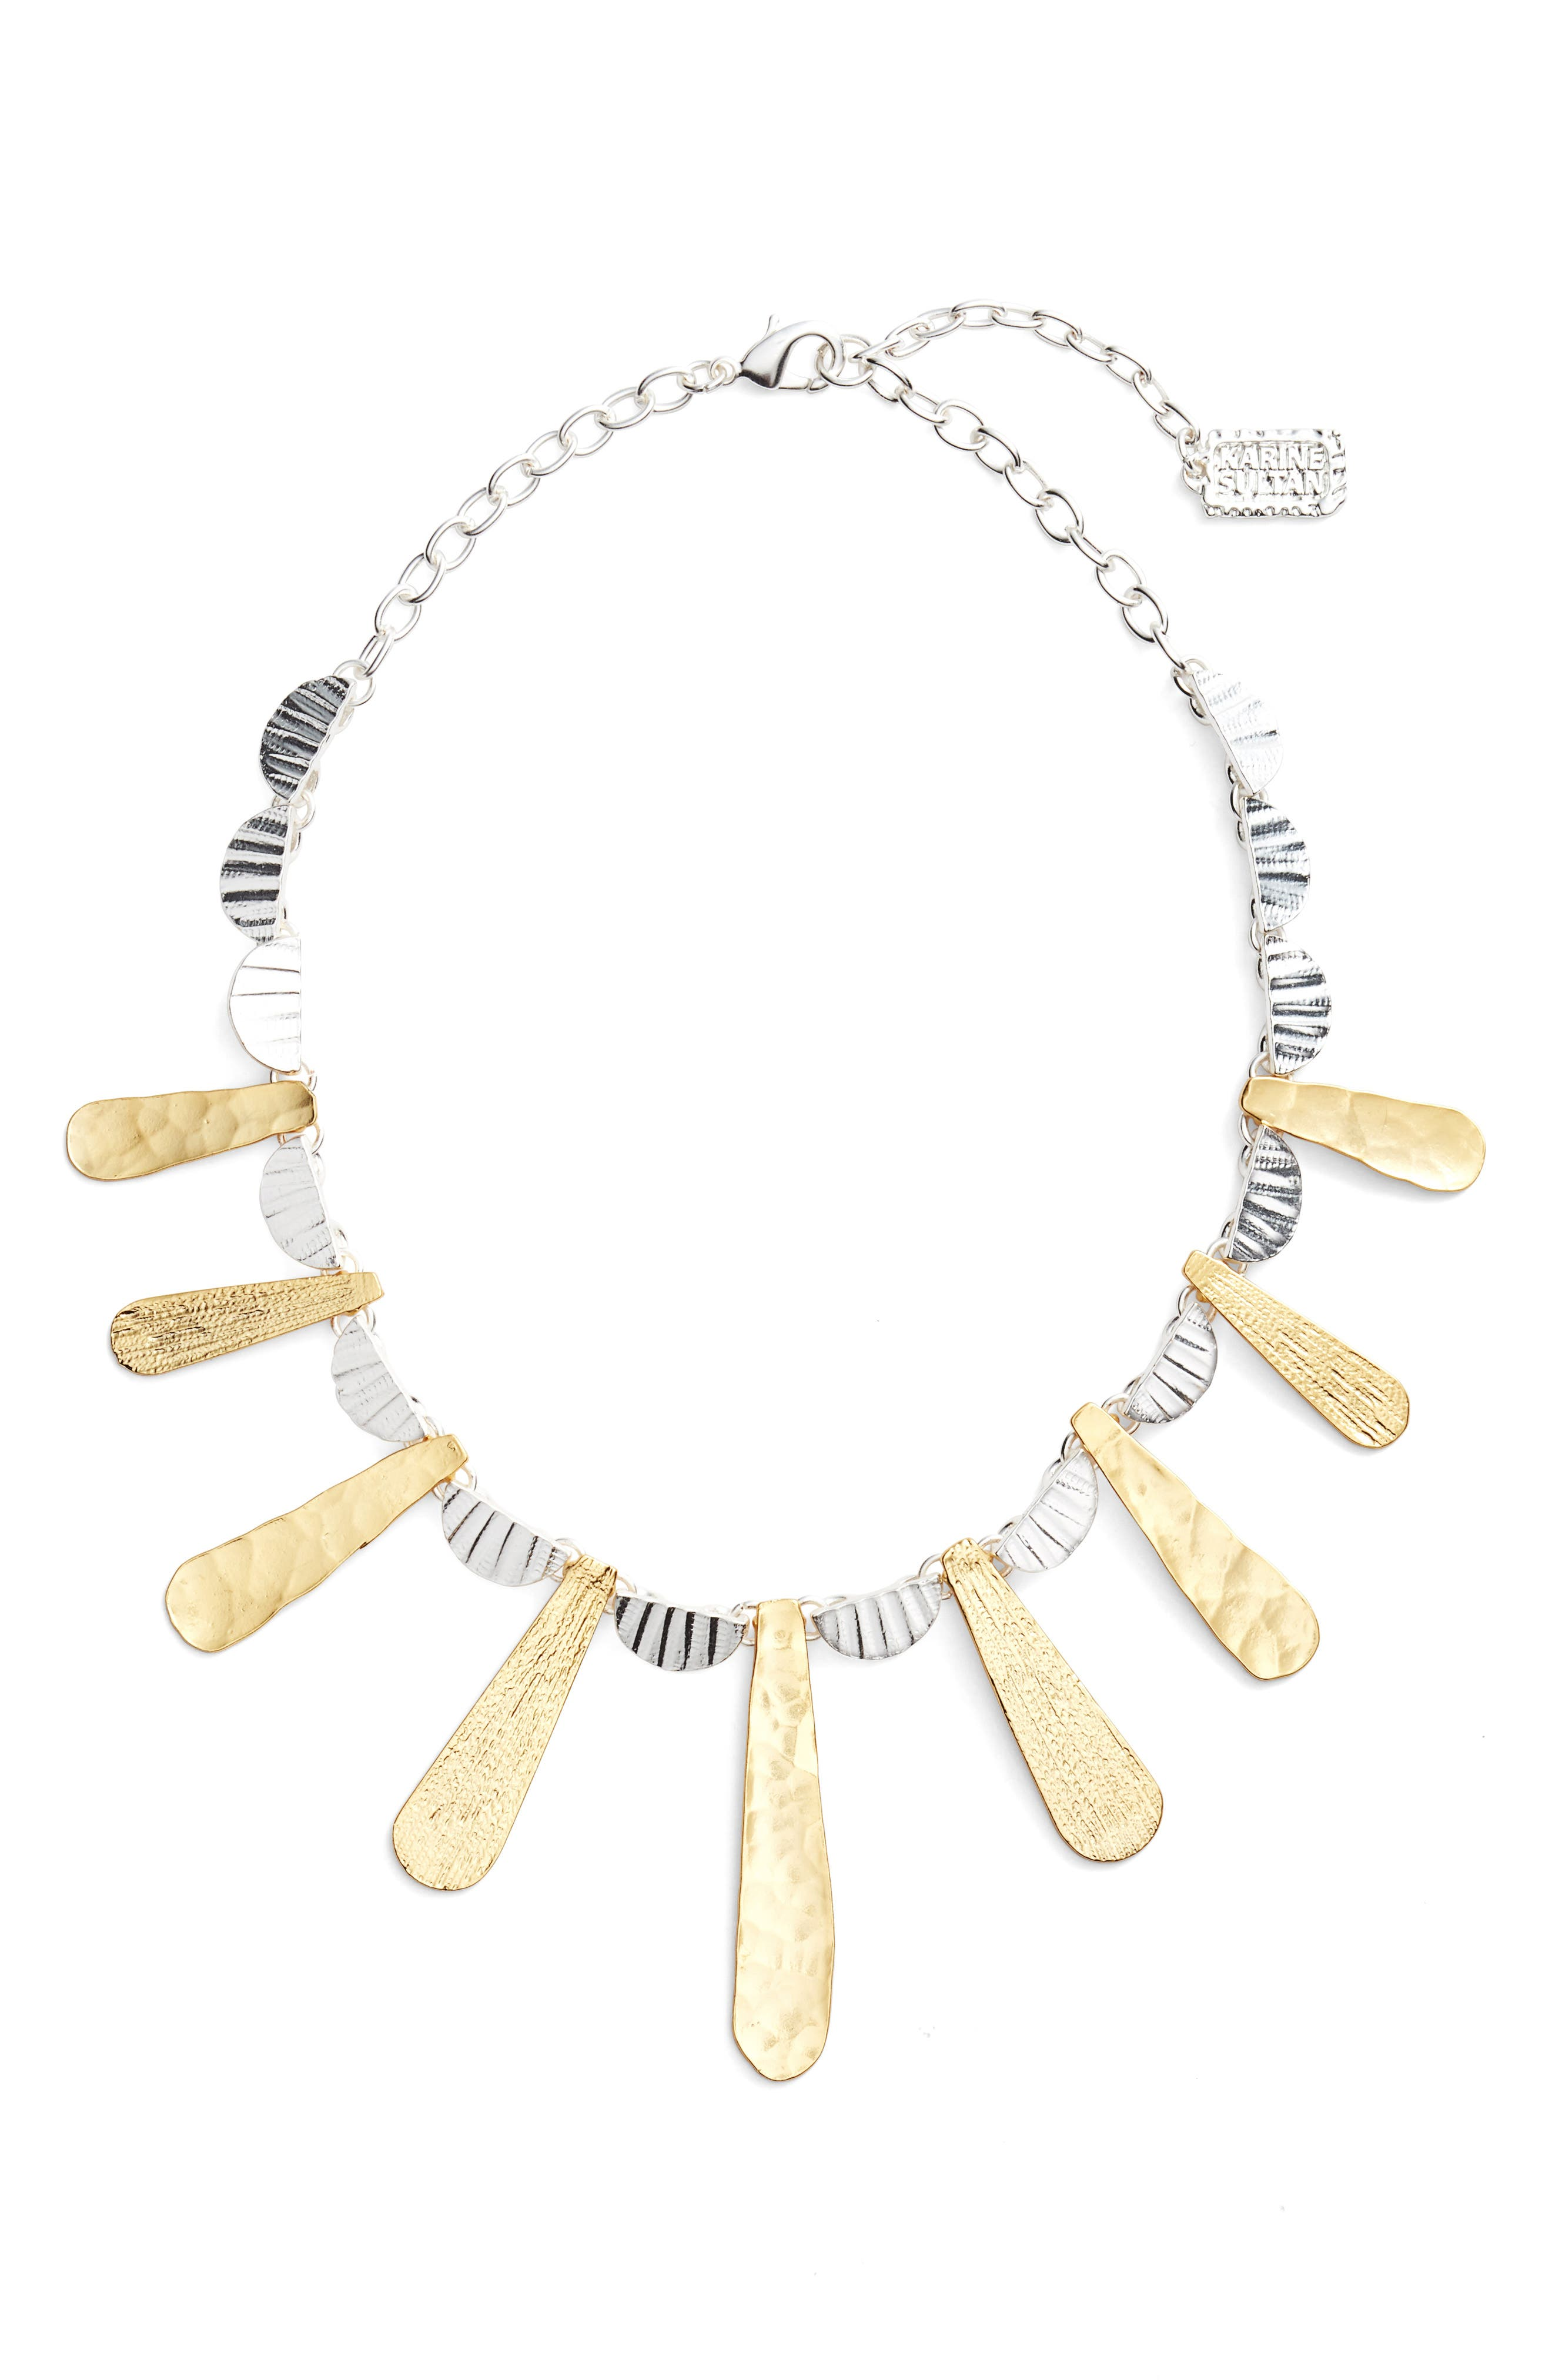 Hammered Collar Necklace,                         Main,                         color, SILVER/GOLD MIX